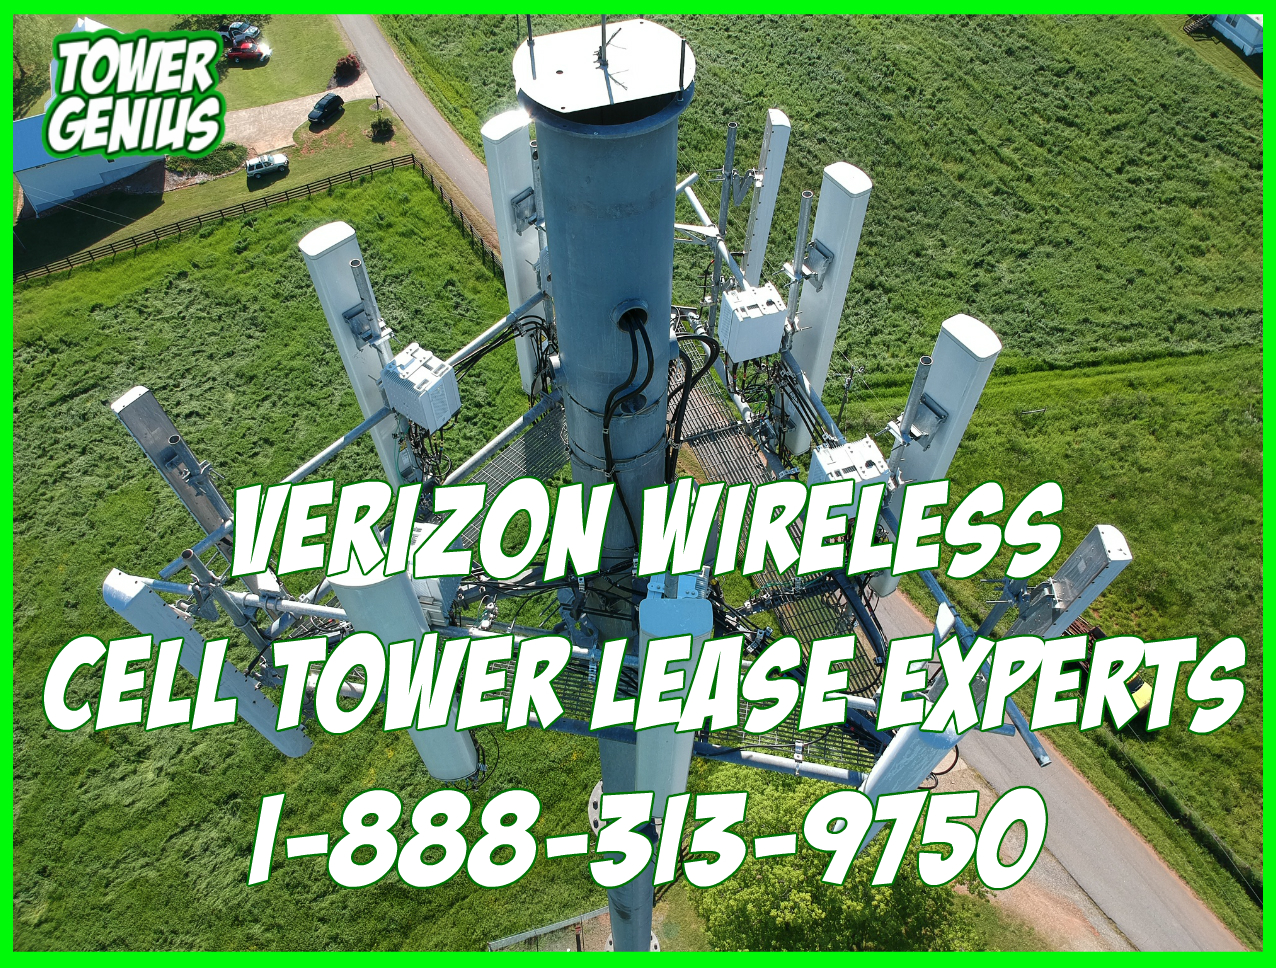 Verizon Wireless Cell Tower Lease Experts | Tower Genius